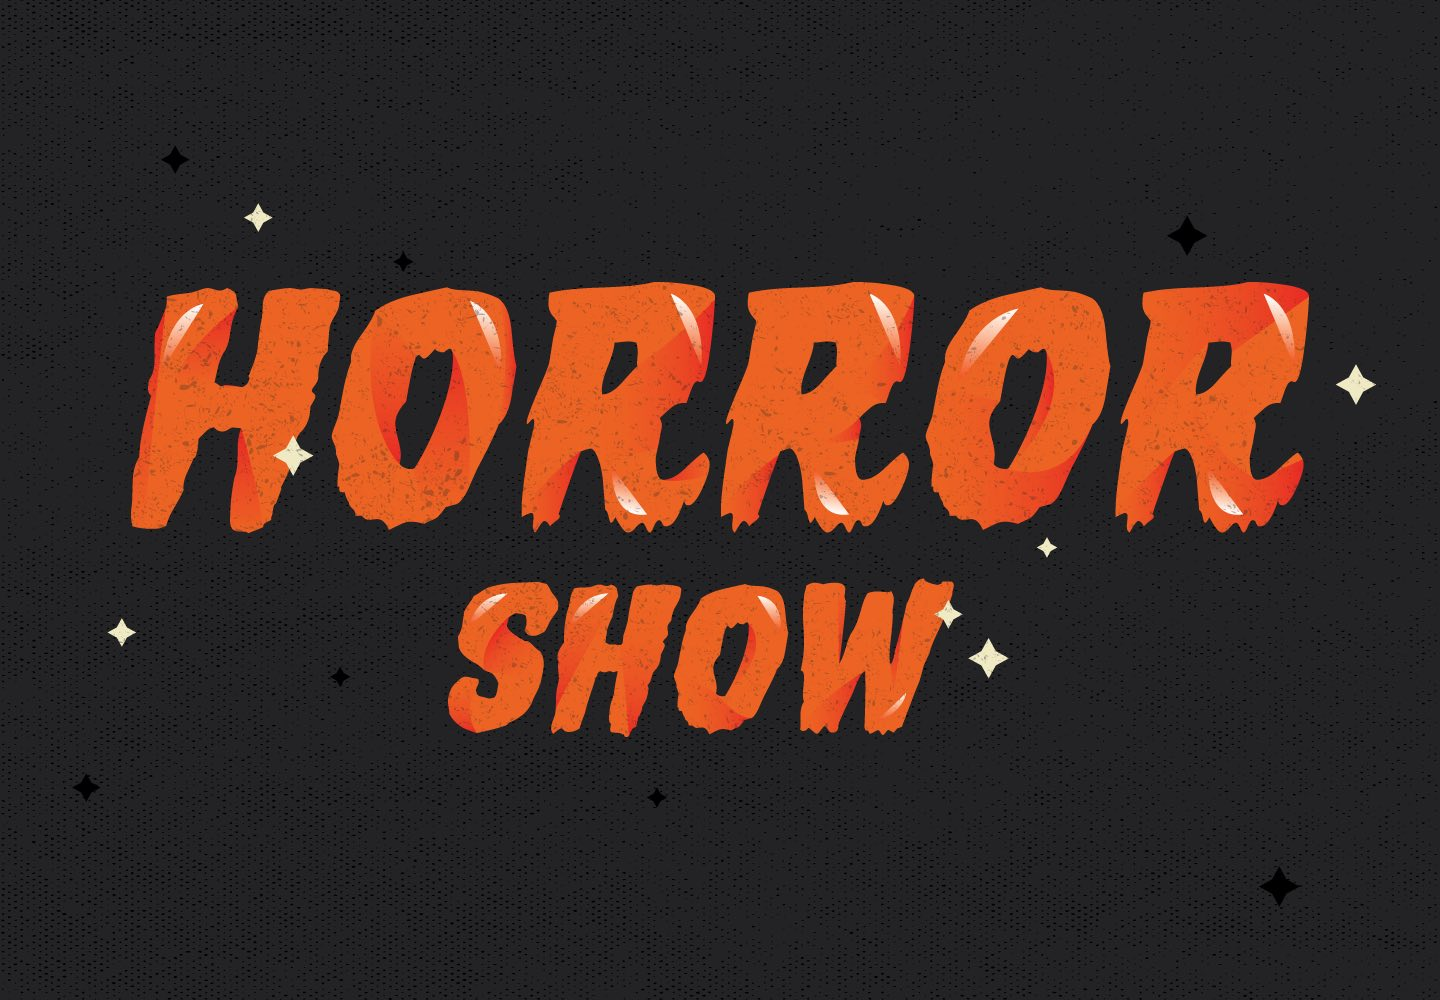 horror show recalls classic type styles that were commonplace in mid century horror movie poster designs this heavy display font is packed with thrills and - Good Halloween Font